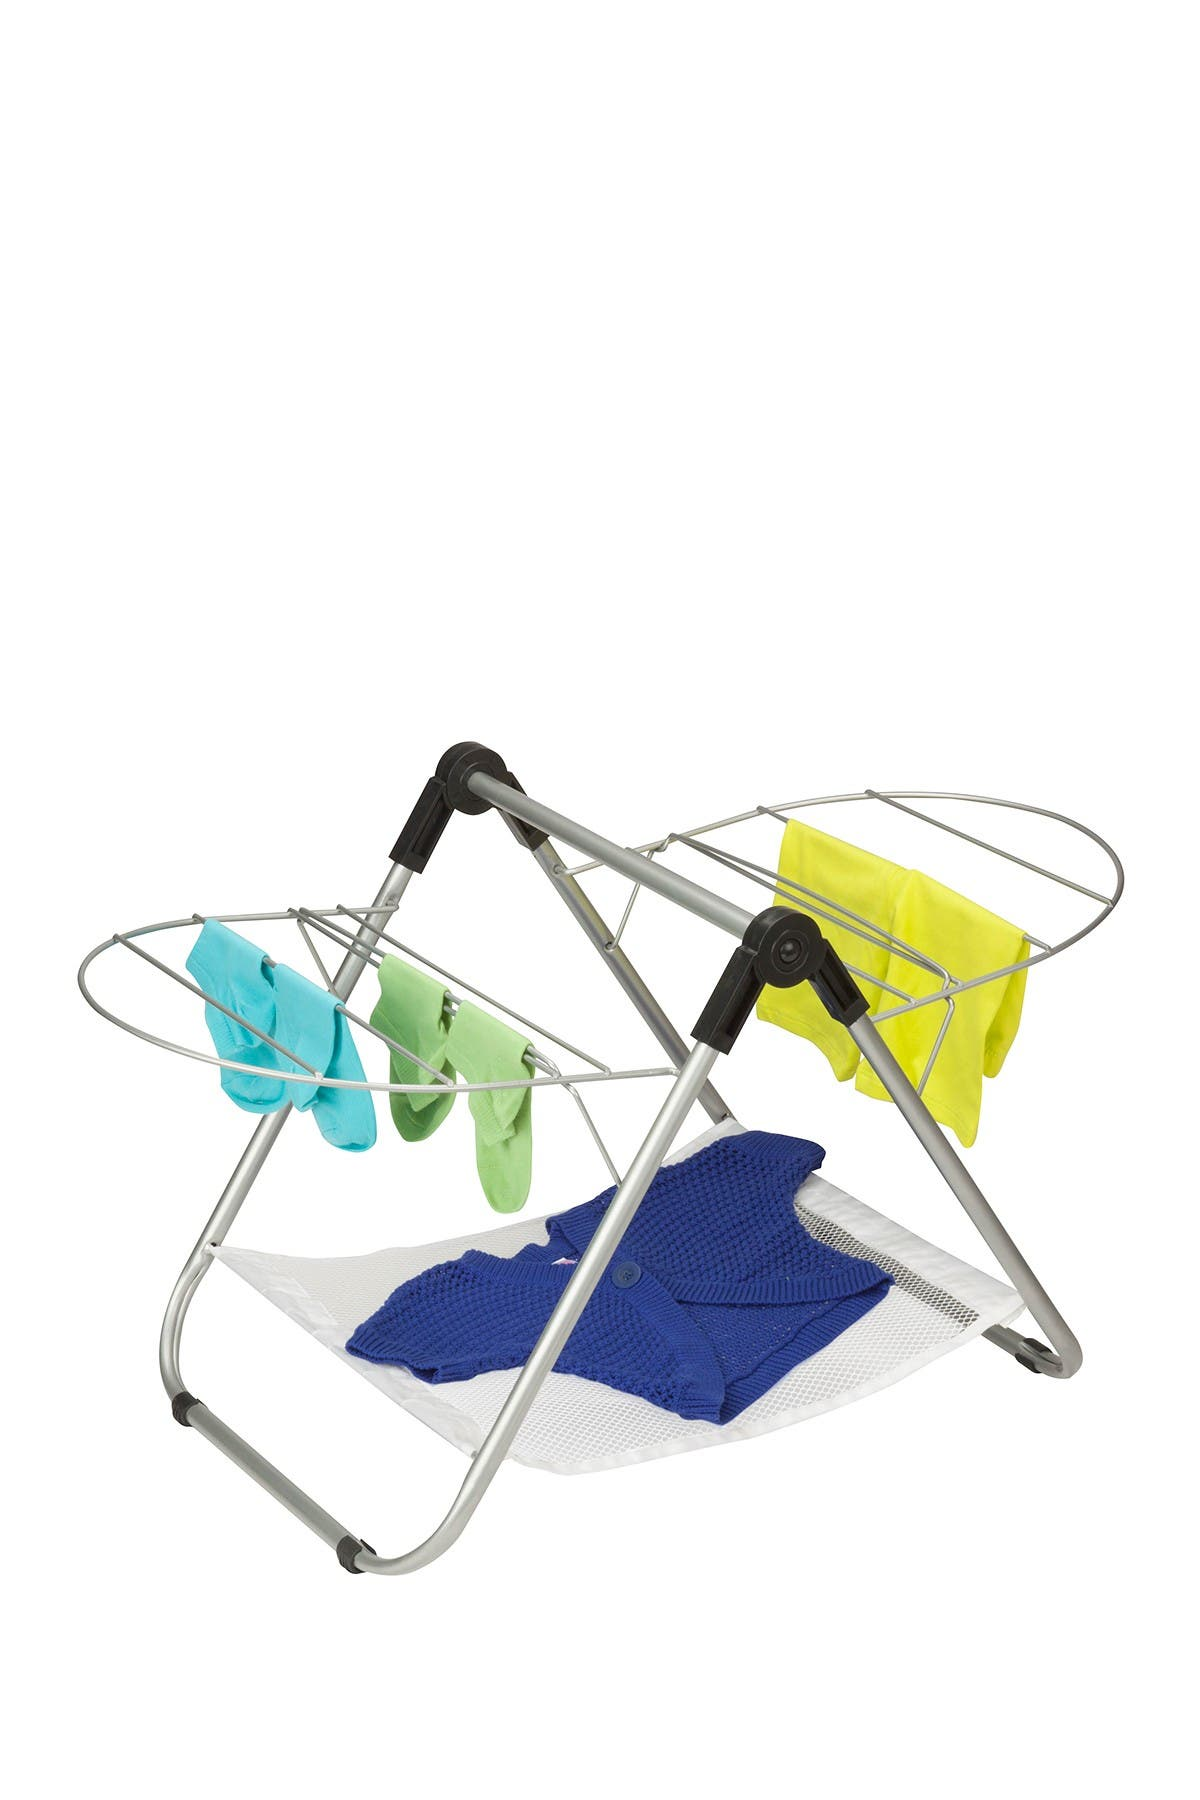 Image of Honey-Can-Do Silver Tabletop Drying Rack